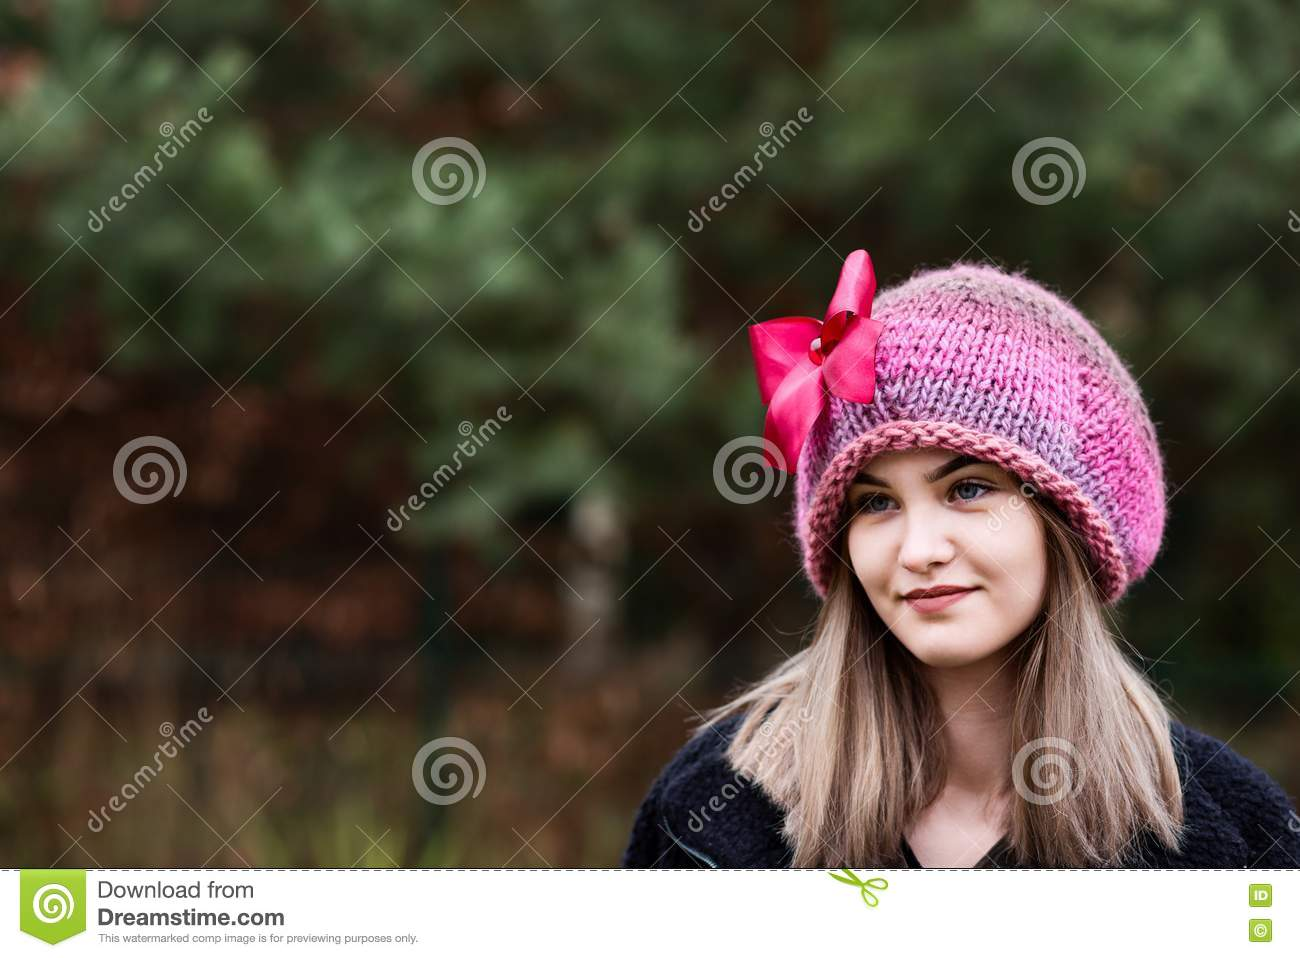 5f8fdef2a5b2 Thoughtful Young Woman In Woolen Cap Stock Image - Image of ...